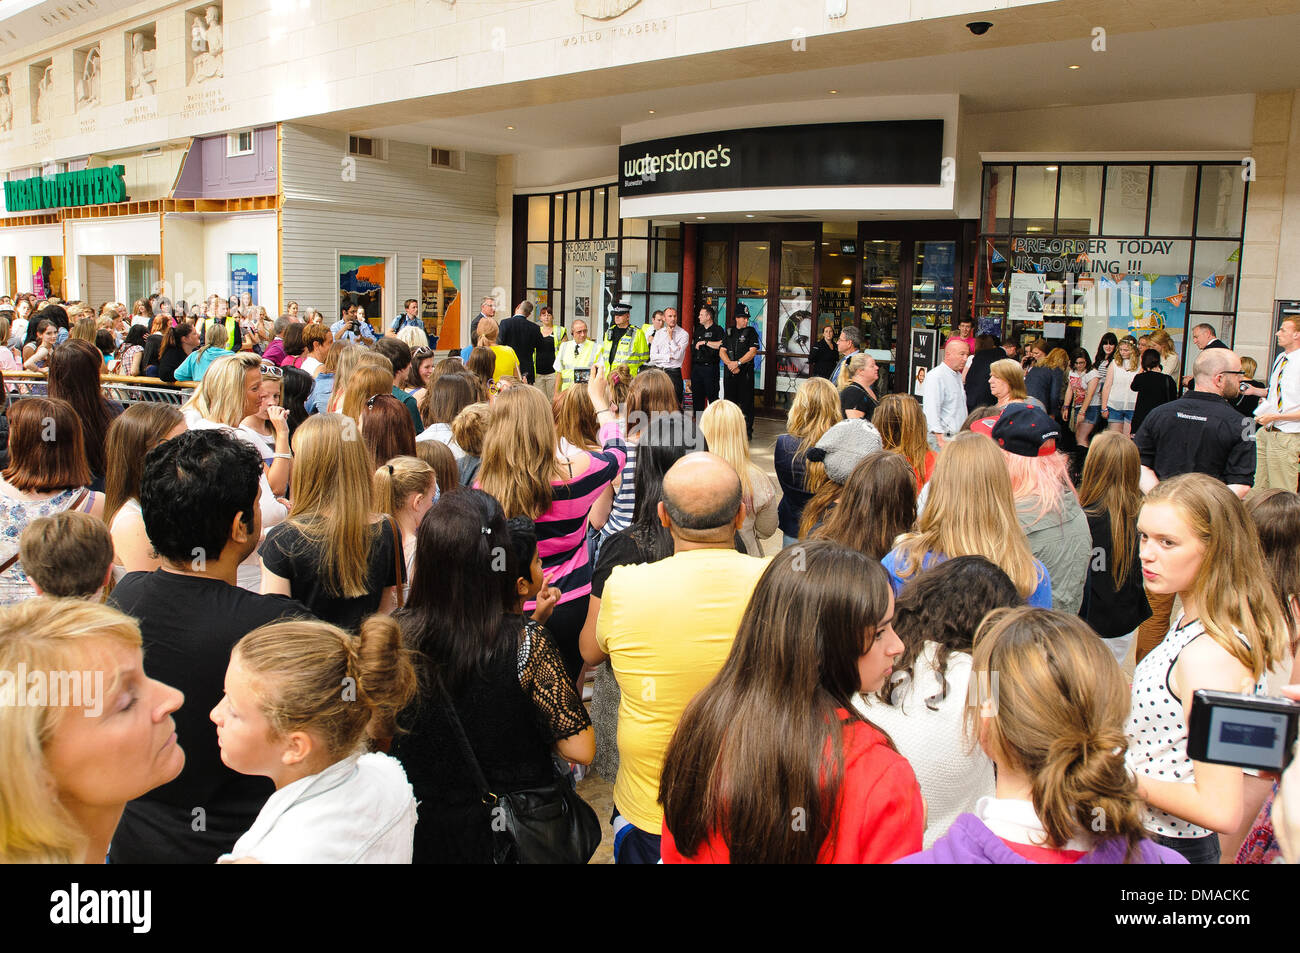 Los fans esperando el medallista olímpico, Tom Daley en Bluewater shopping center. Londres, Inglaterra - 16.08.12 Foto de stock